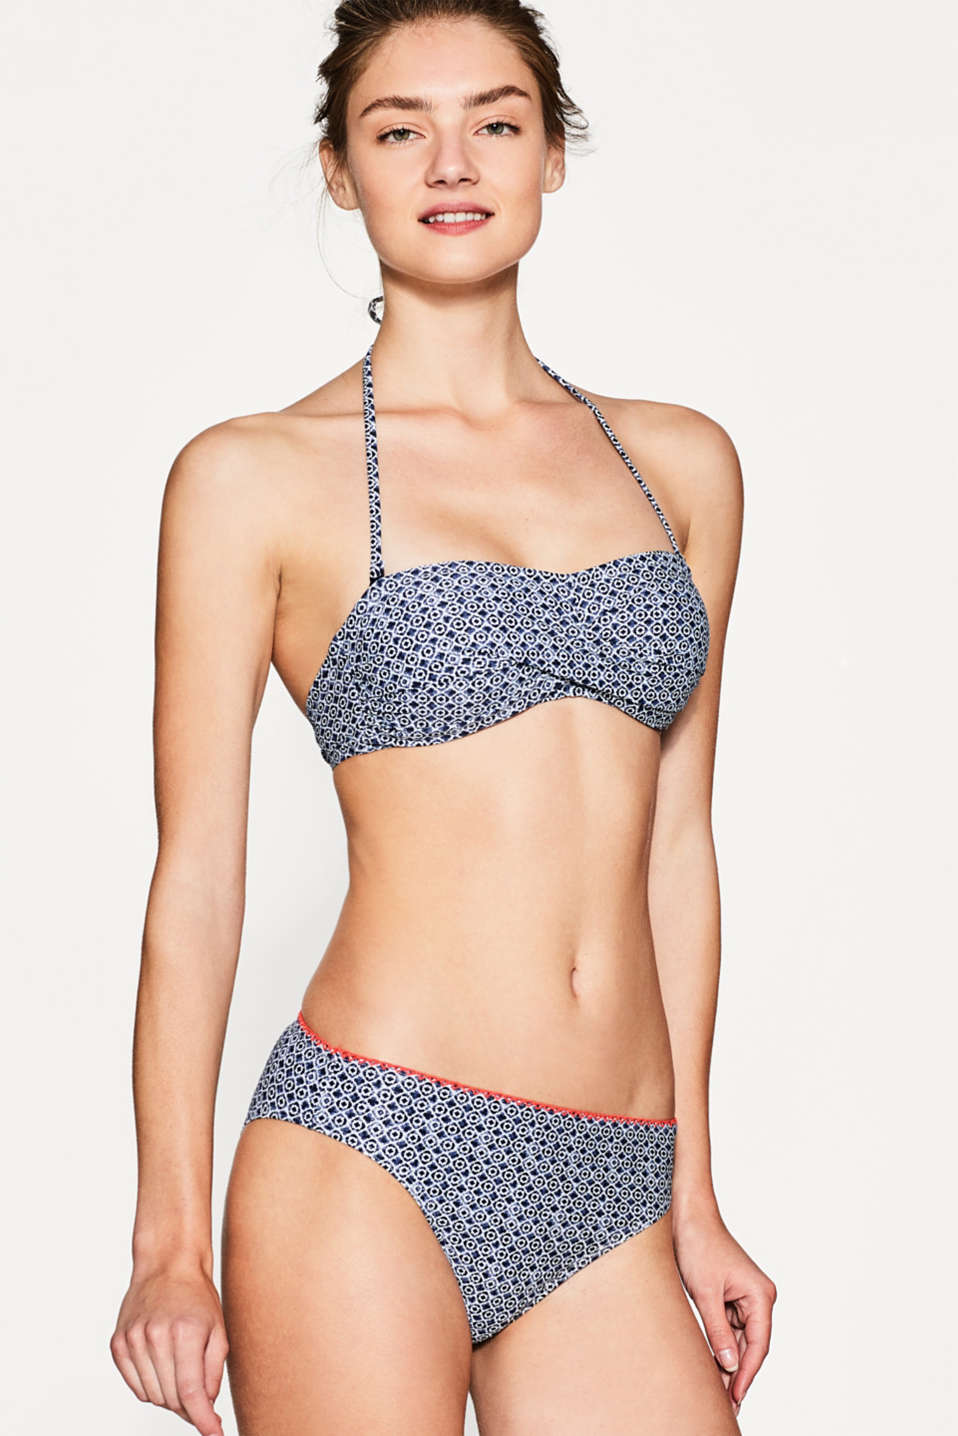 Esprit - Briefs with mini print and scalloped edges